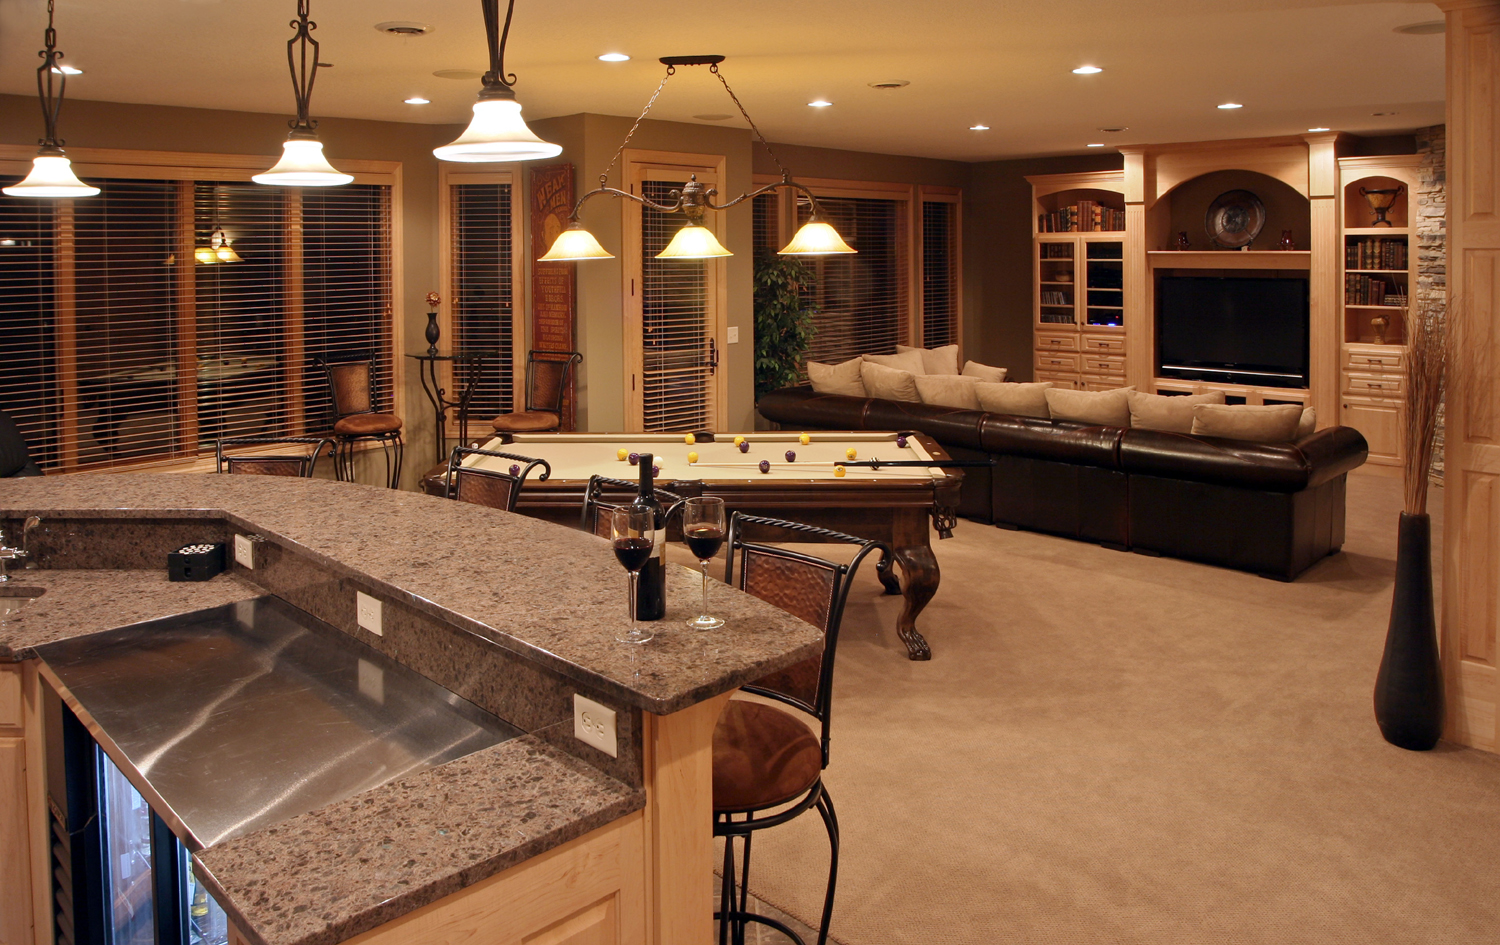 Basement kids game room - Classic Pendant Lighting Fixtures For Basement That Is Upgraded Into Open Space For Basement Bar Game